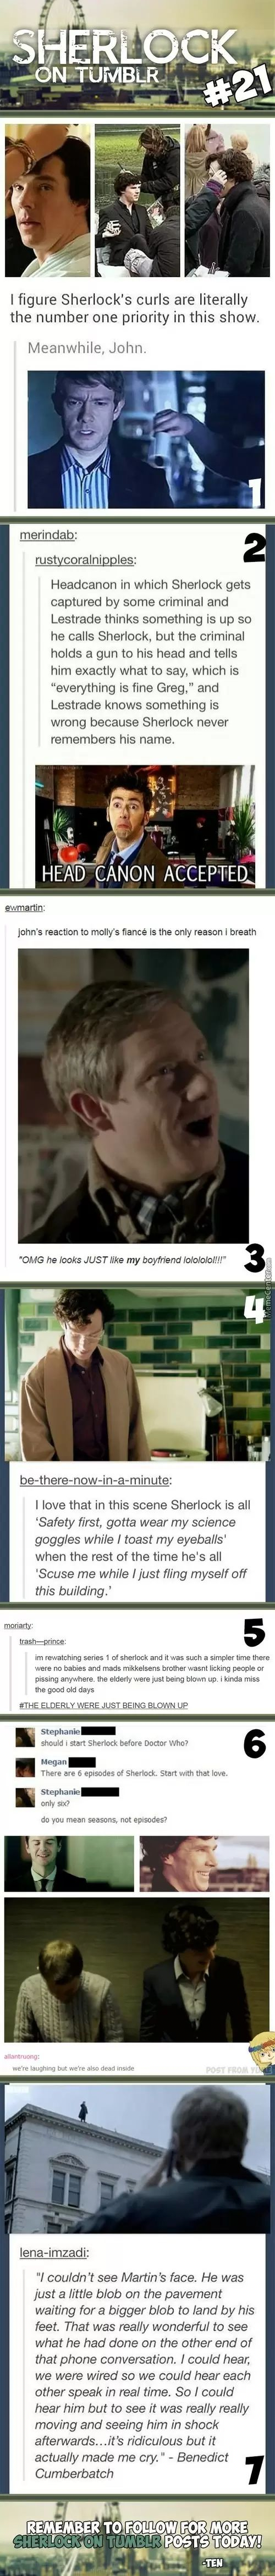 "Sherlock On Tumblr #21 ""I miss the good old days""- that awkward moment when the Sherlock fandom becomes the Supernatural fandom for a second"